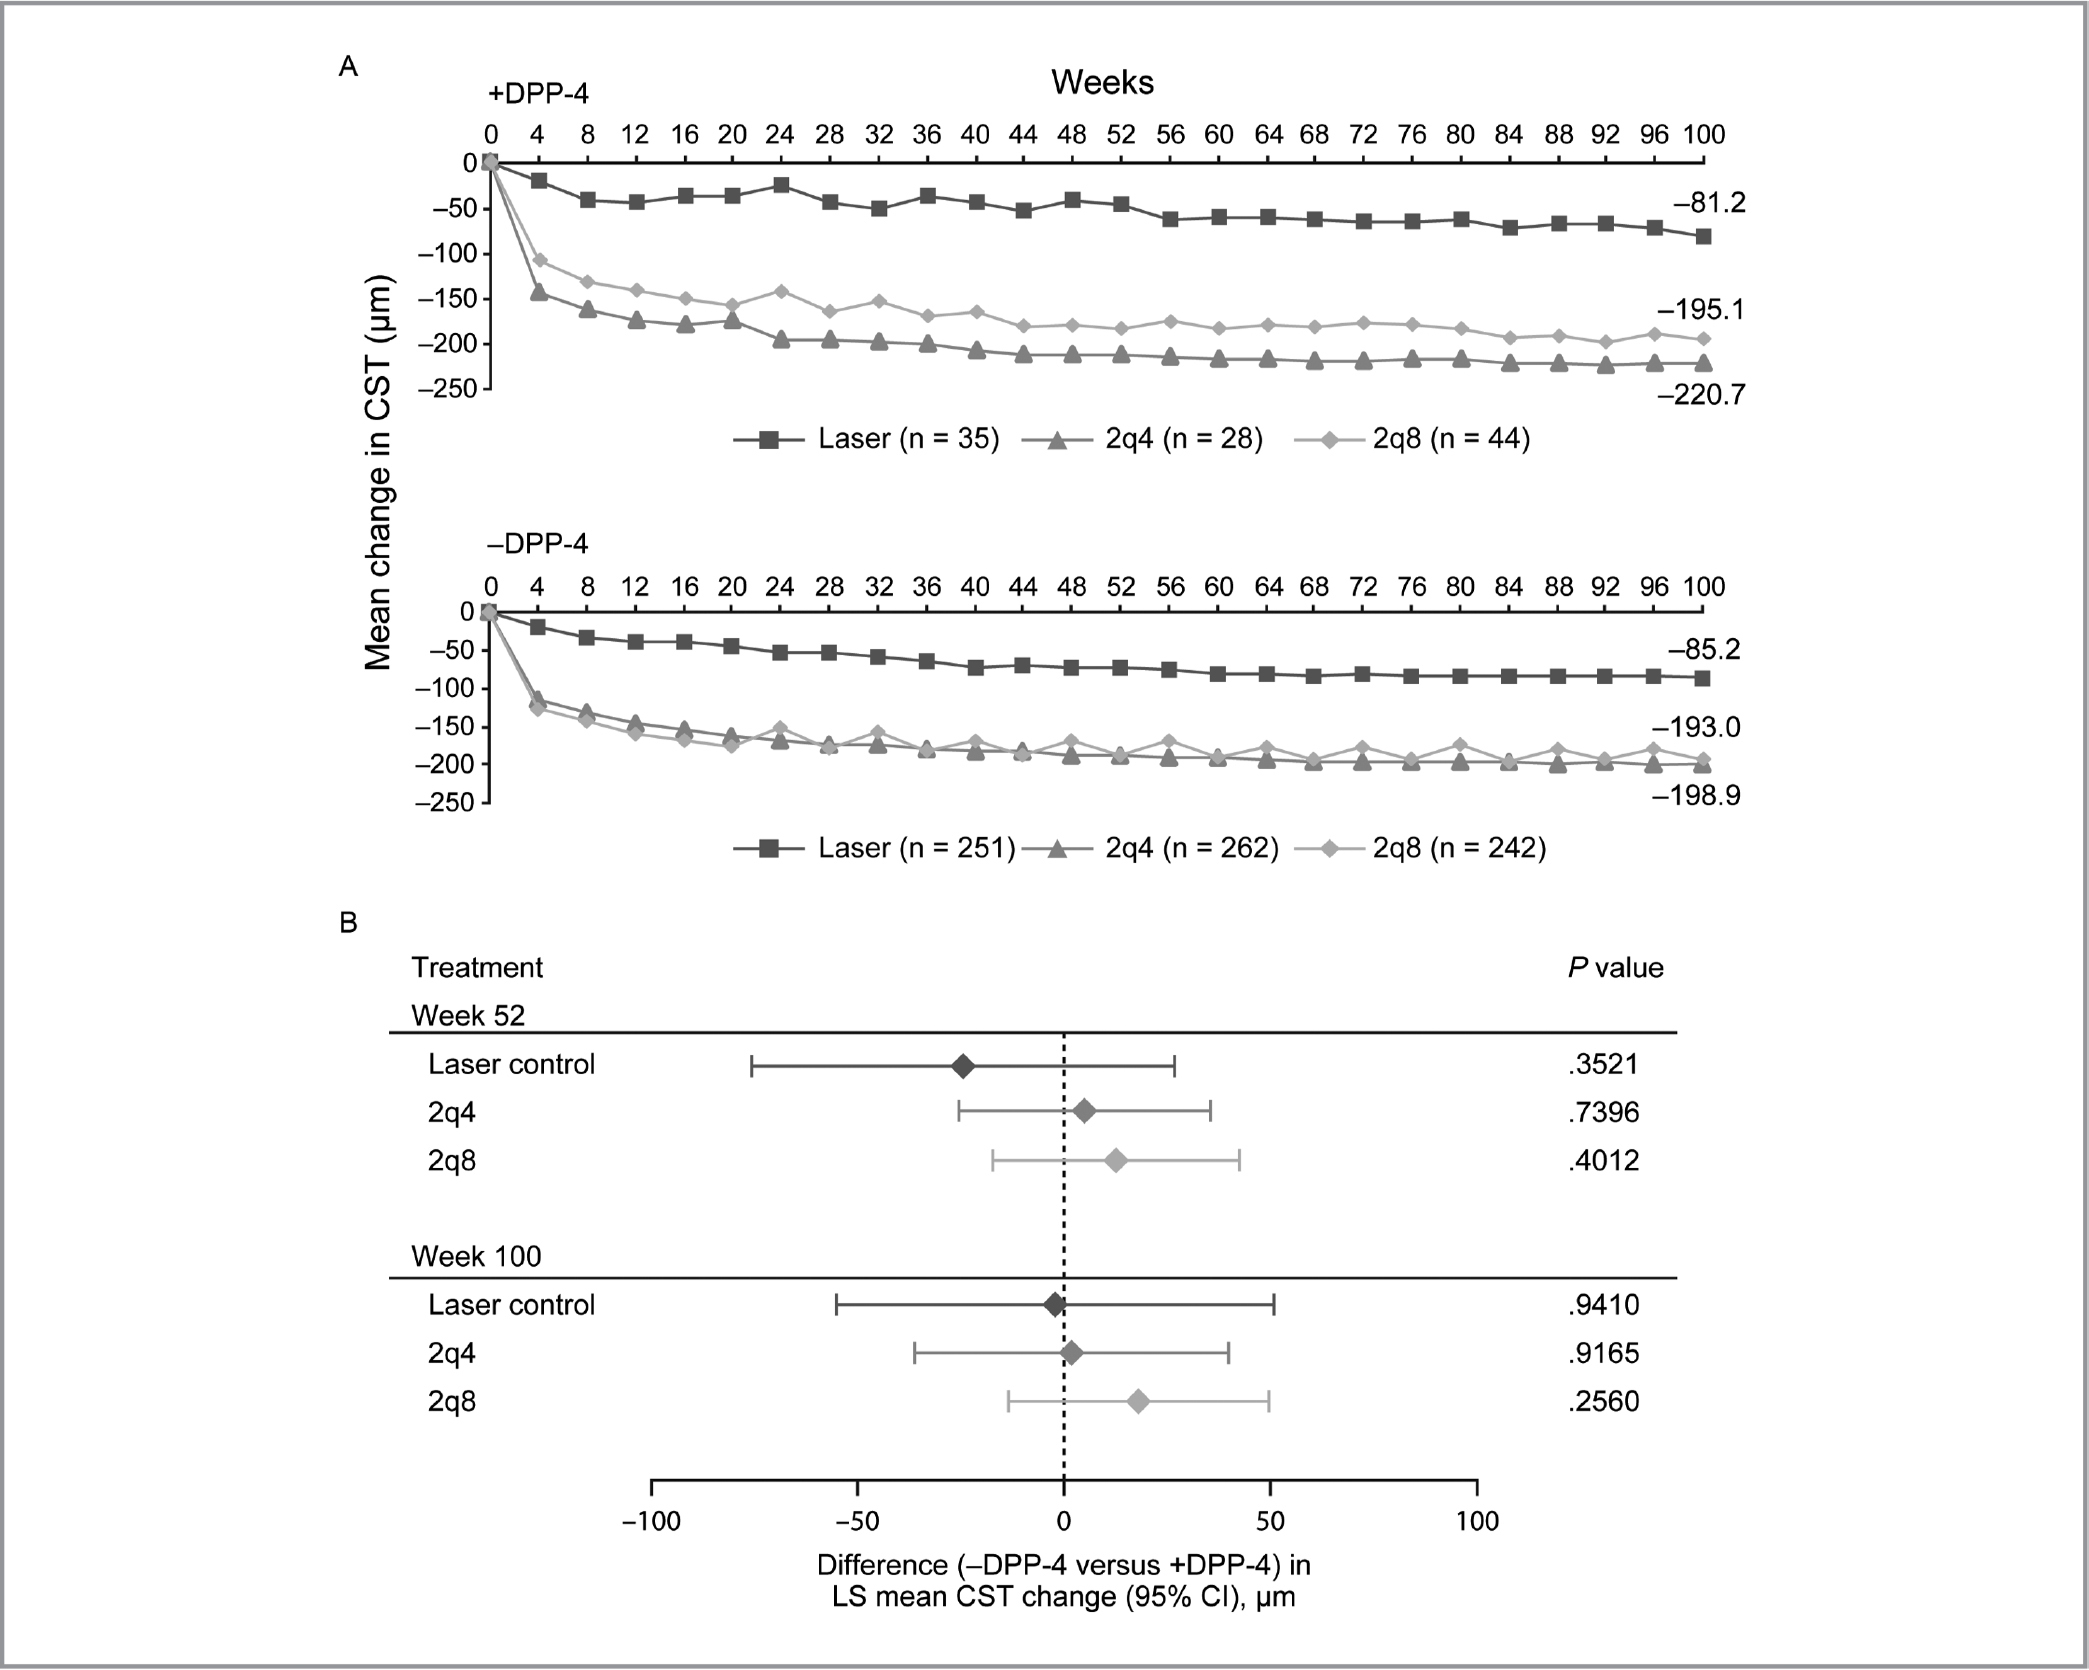 Central subfield thickness (CST) outcome by reported dipeptidyl peptidase-4 (DPP-4) inhibitor use at baseline. (A) Mean CST reduction through 100 Weeks by reported DPP-4 inhibitor use at baseline. (B) Difference in least square mean (95% CI) change in CST at Weeks 52 (top) and 100 (bottom) in –DPP-4 inhibitor versus +DPP-4 inhibitor subgroups. Missing data were imputed using last observation carried forward. 2q4 = intravitreal aflibercept injection 2 mg every 4 weeks; 2q8 = intravitreal aflibercept injection 2 mg every 8 weeks after five initial monthly doses; CI = confidence interval